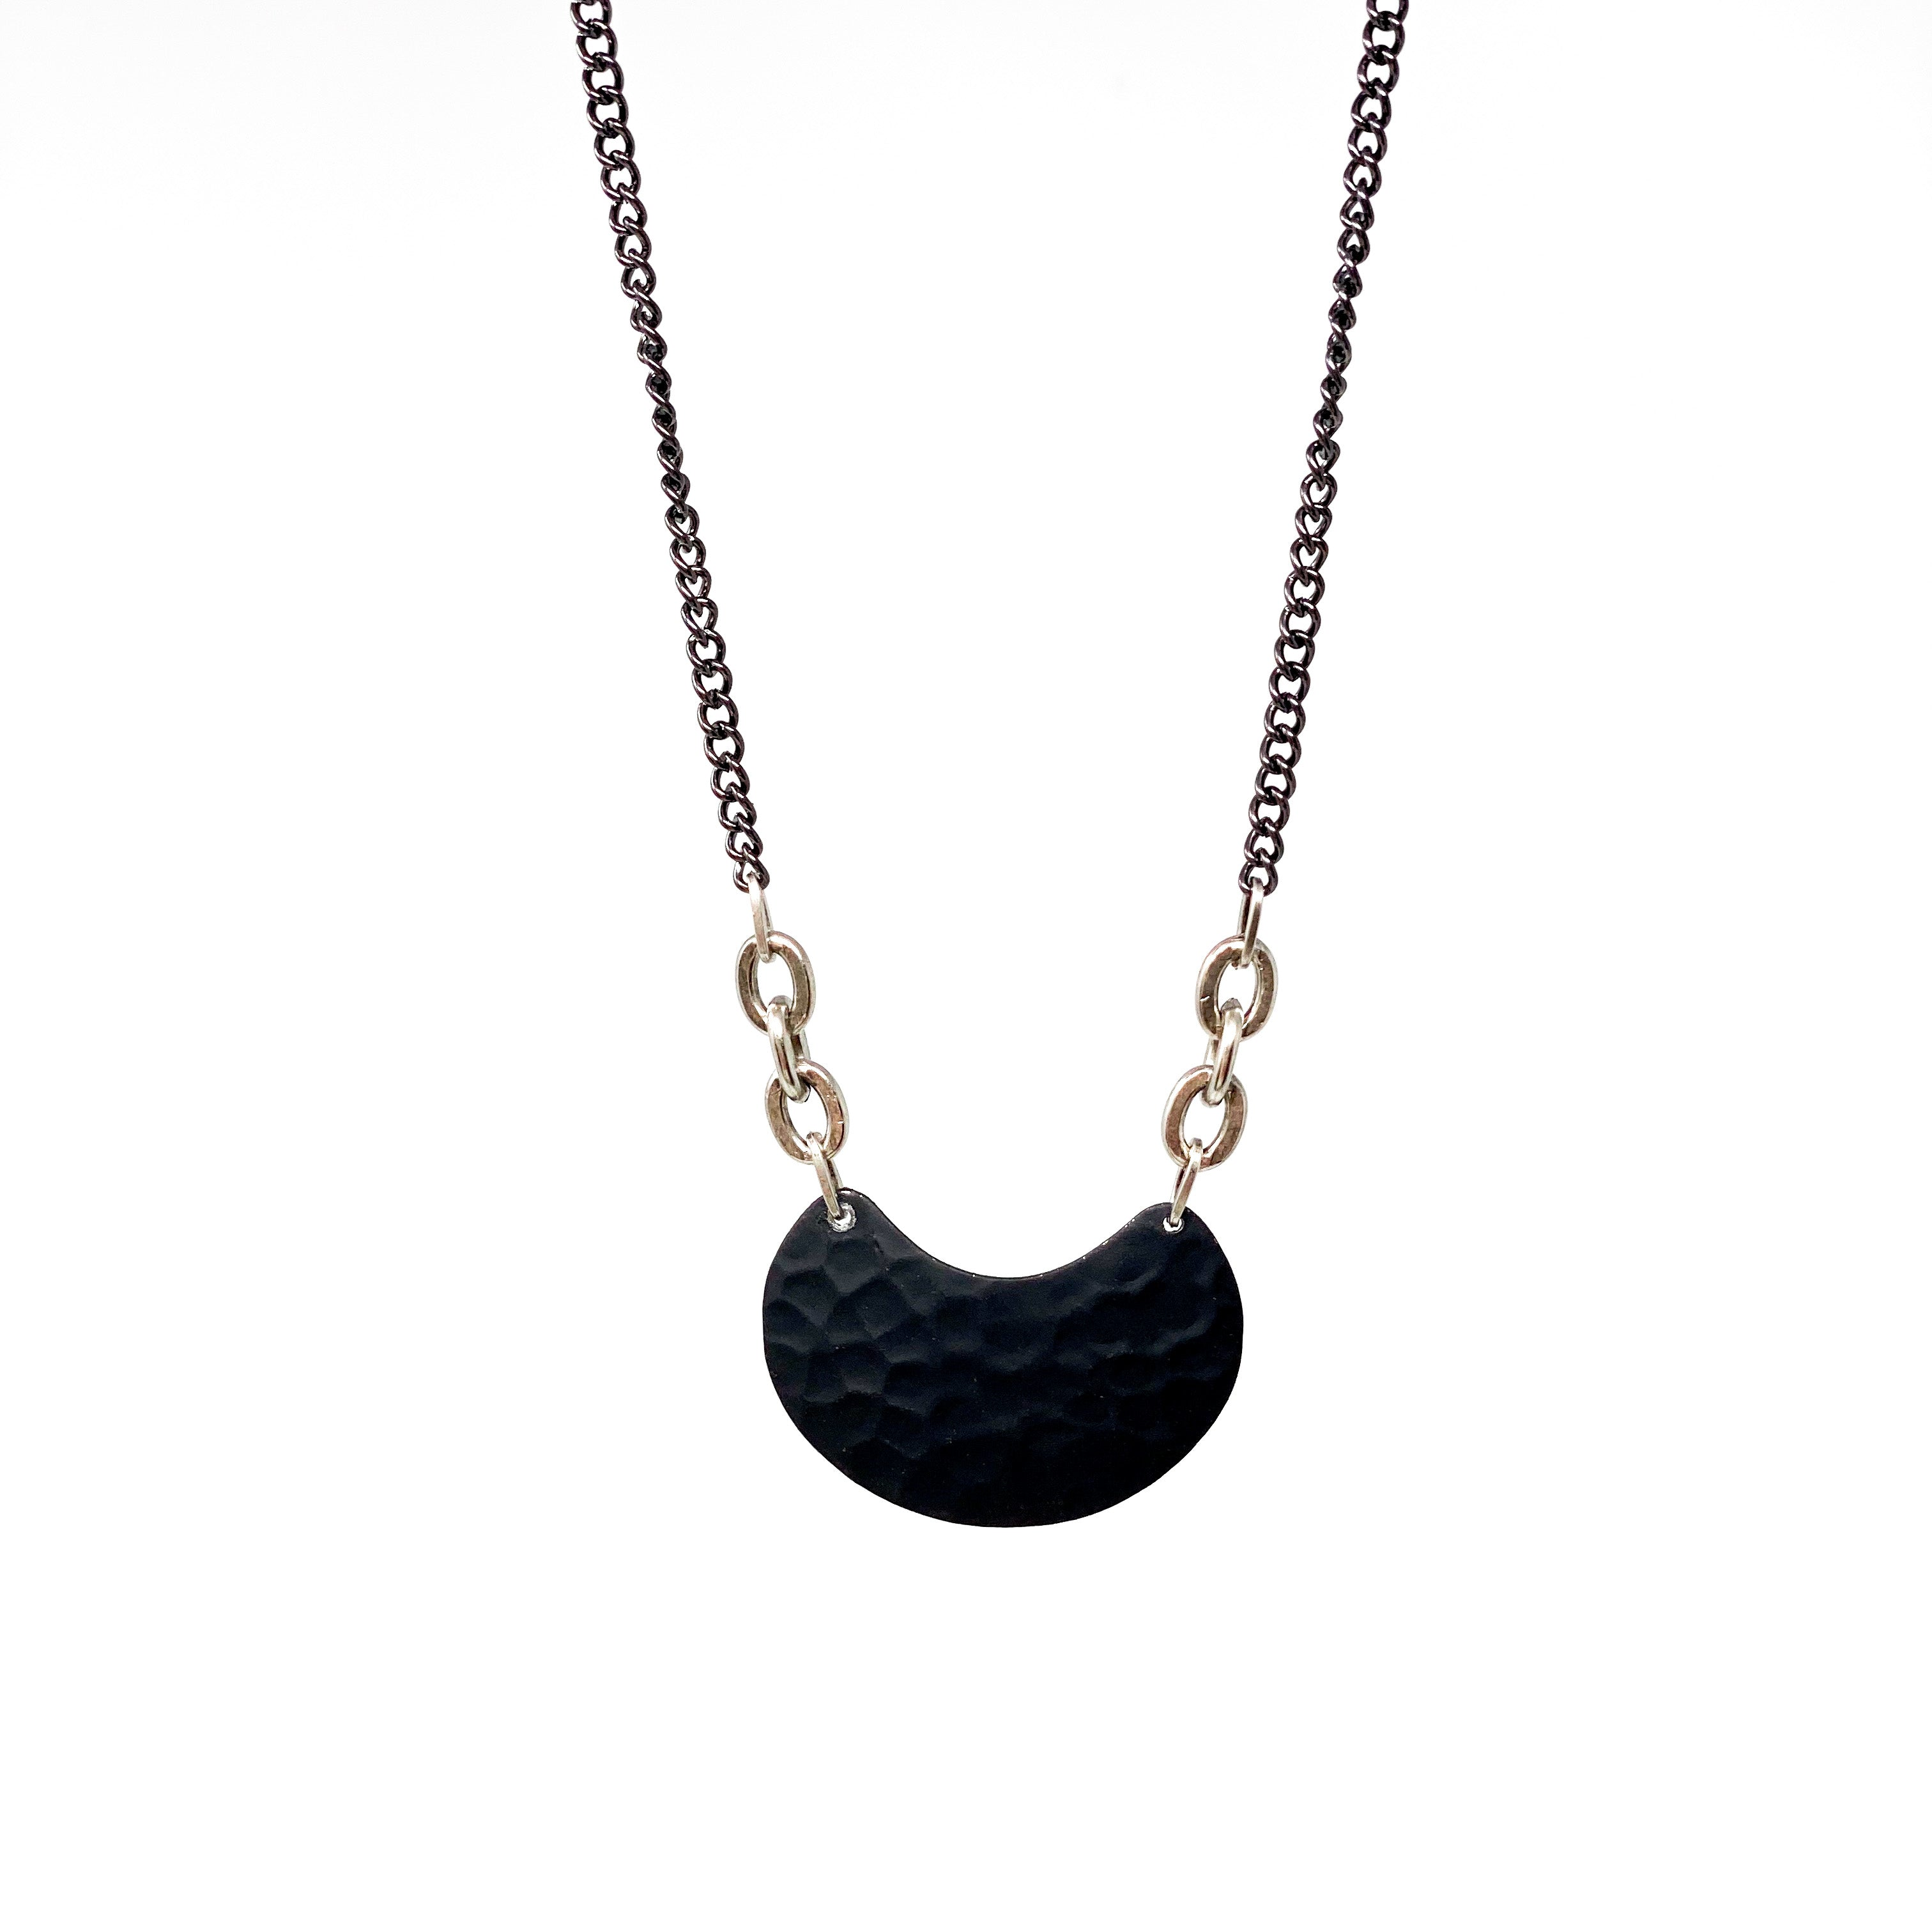 MOON Necklace - Twisted Silver Jewelry